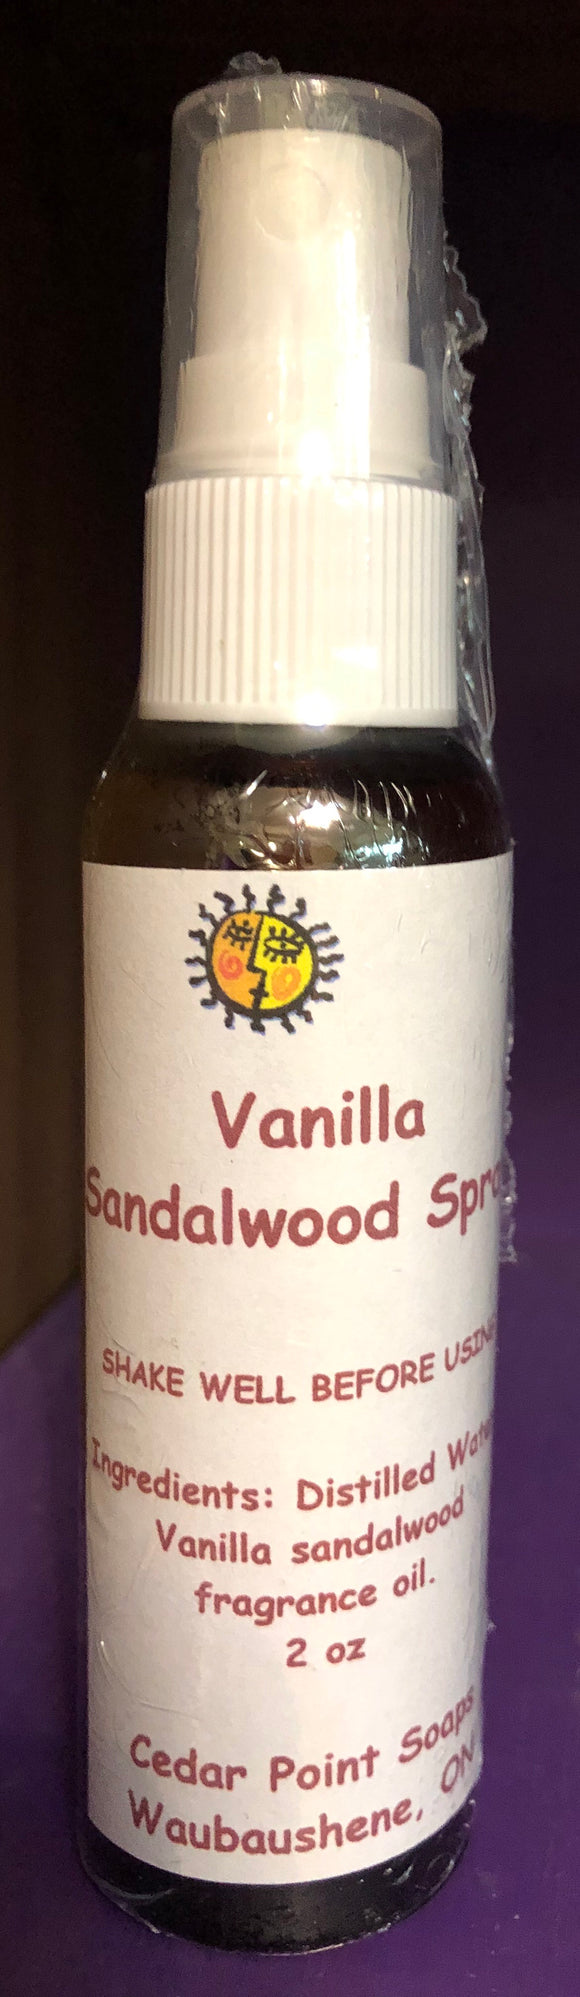 Vanilla sandalwood spray